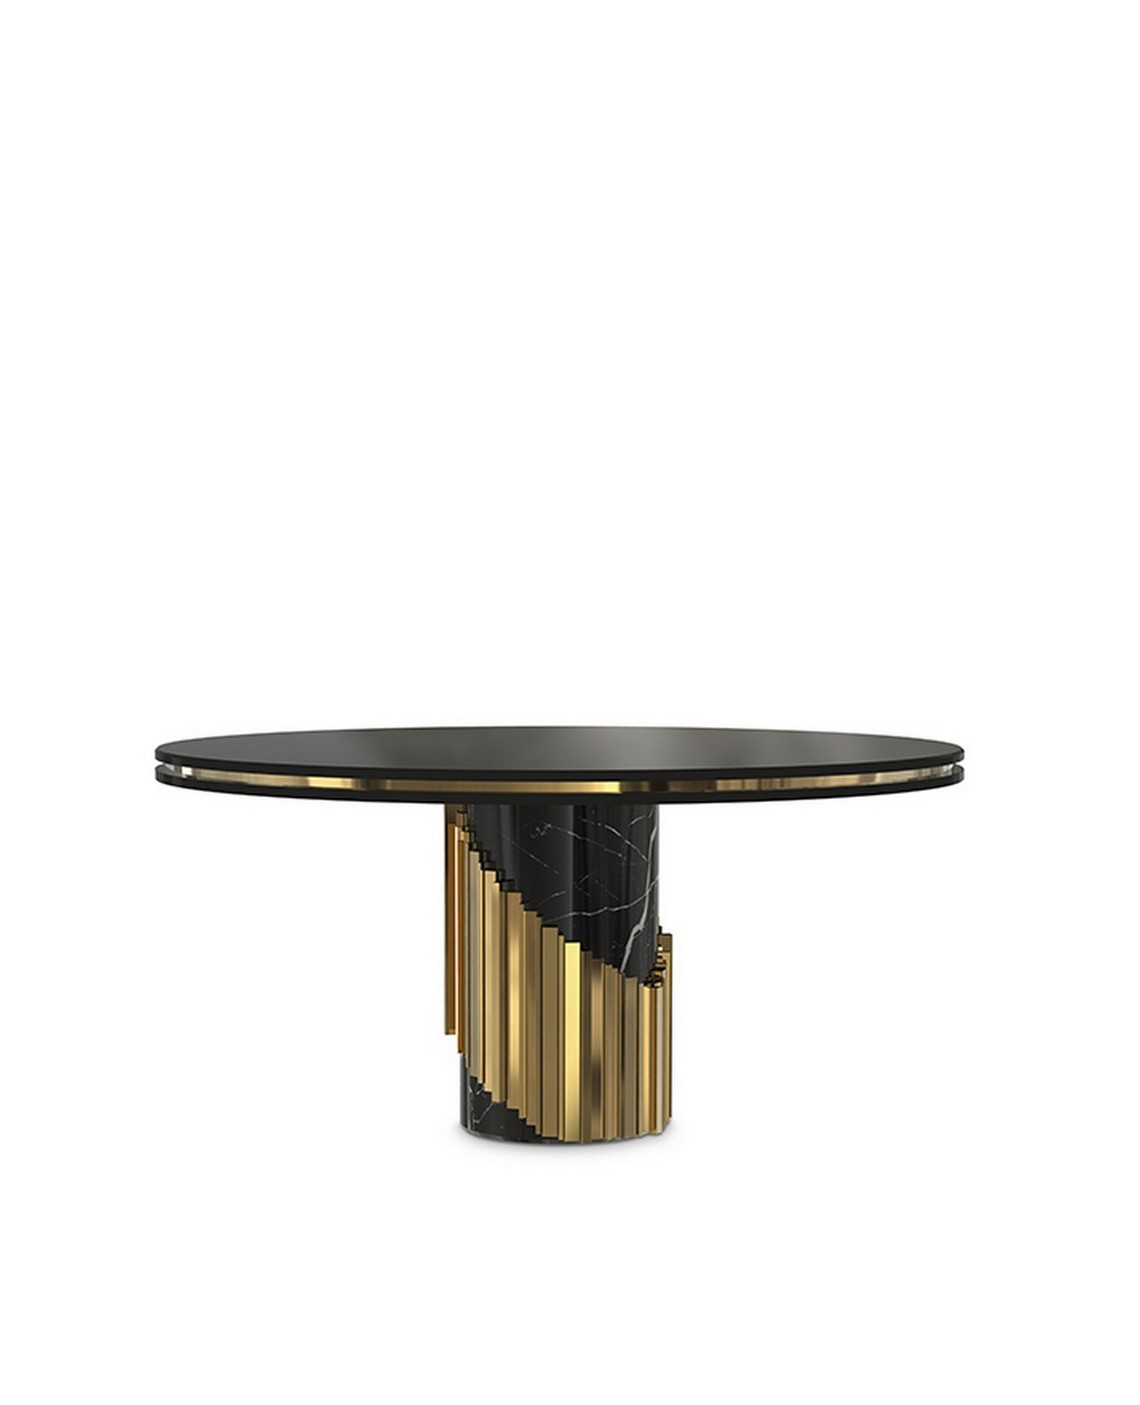 Luxurious Dining Tables For Luxurious Dining Rooms  luxurious dining tables Luxurious Dining Tables For Luxurious Dining Rooms littus2